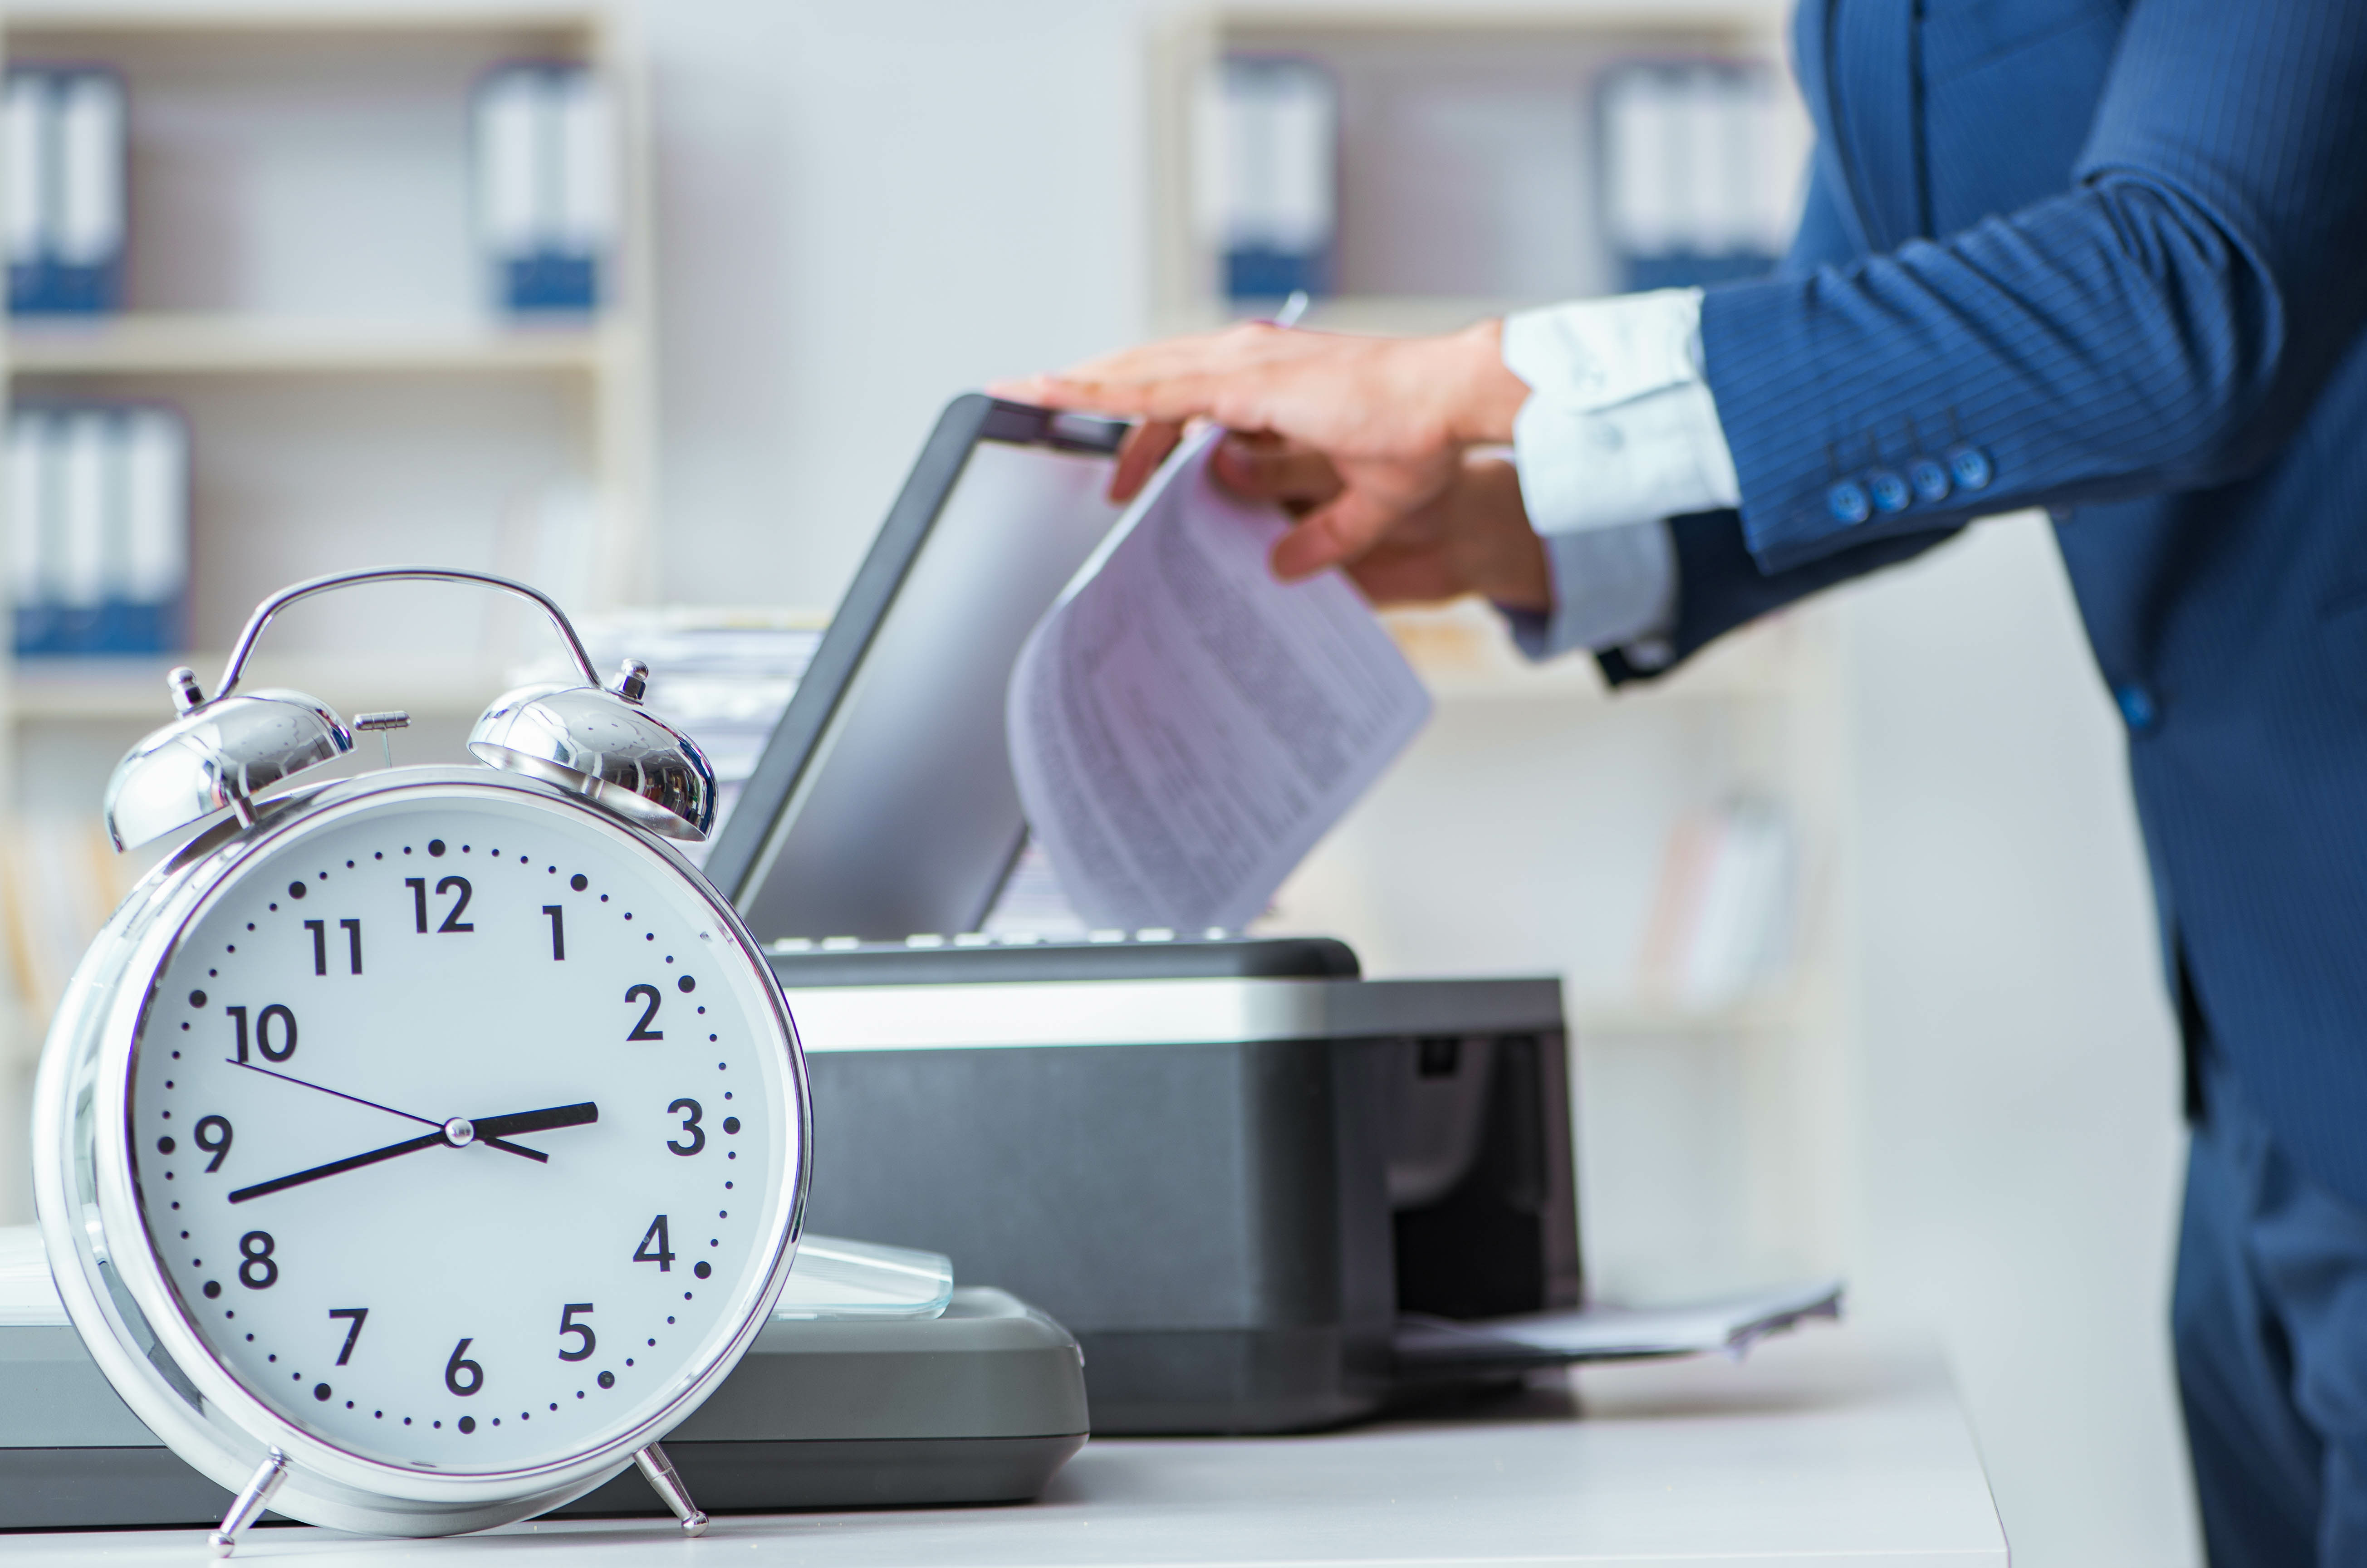 Man using printing with clock in the foreground.